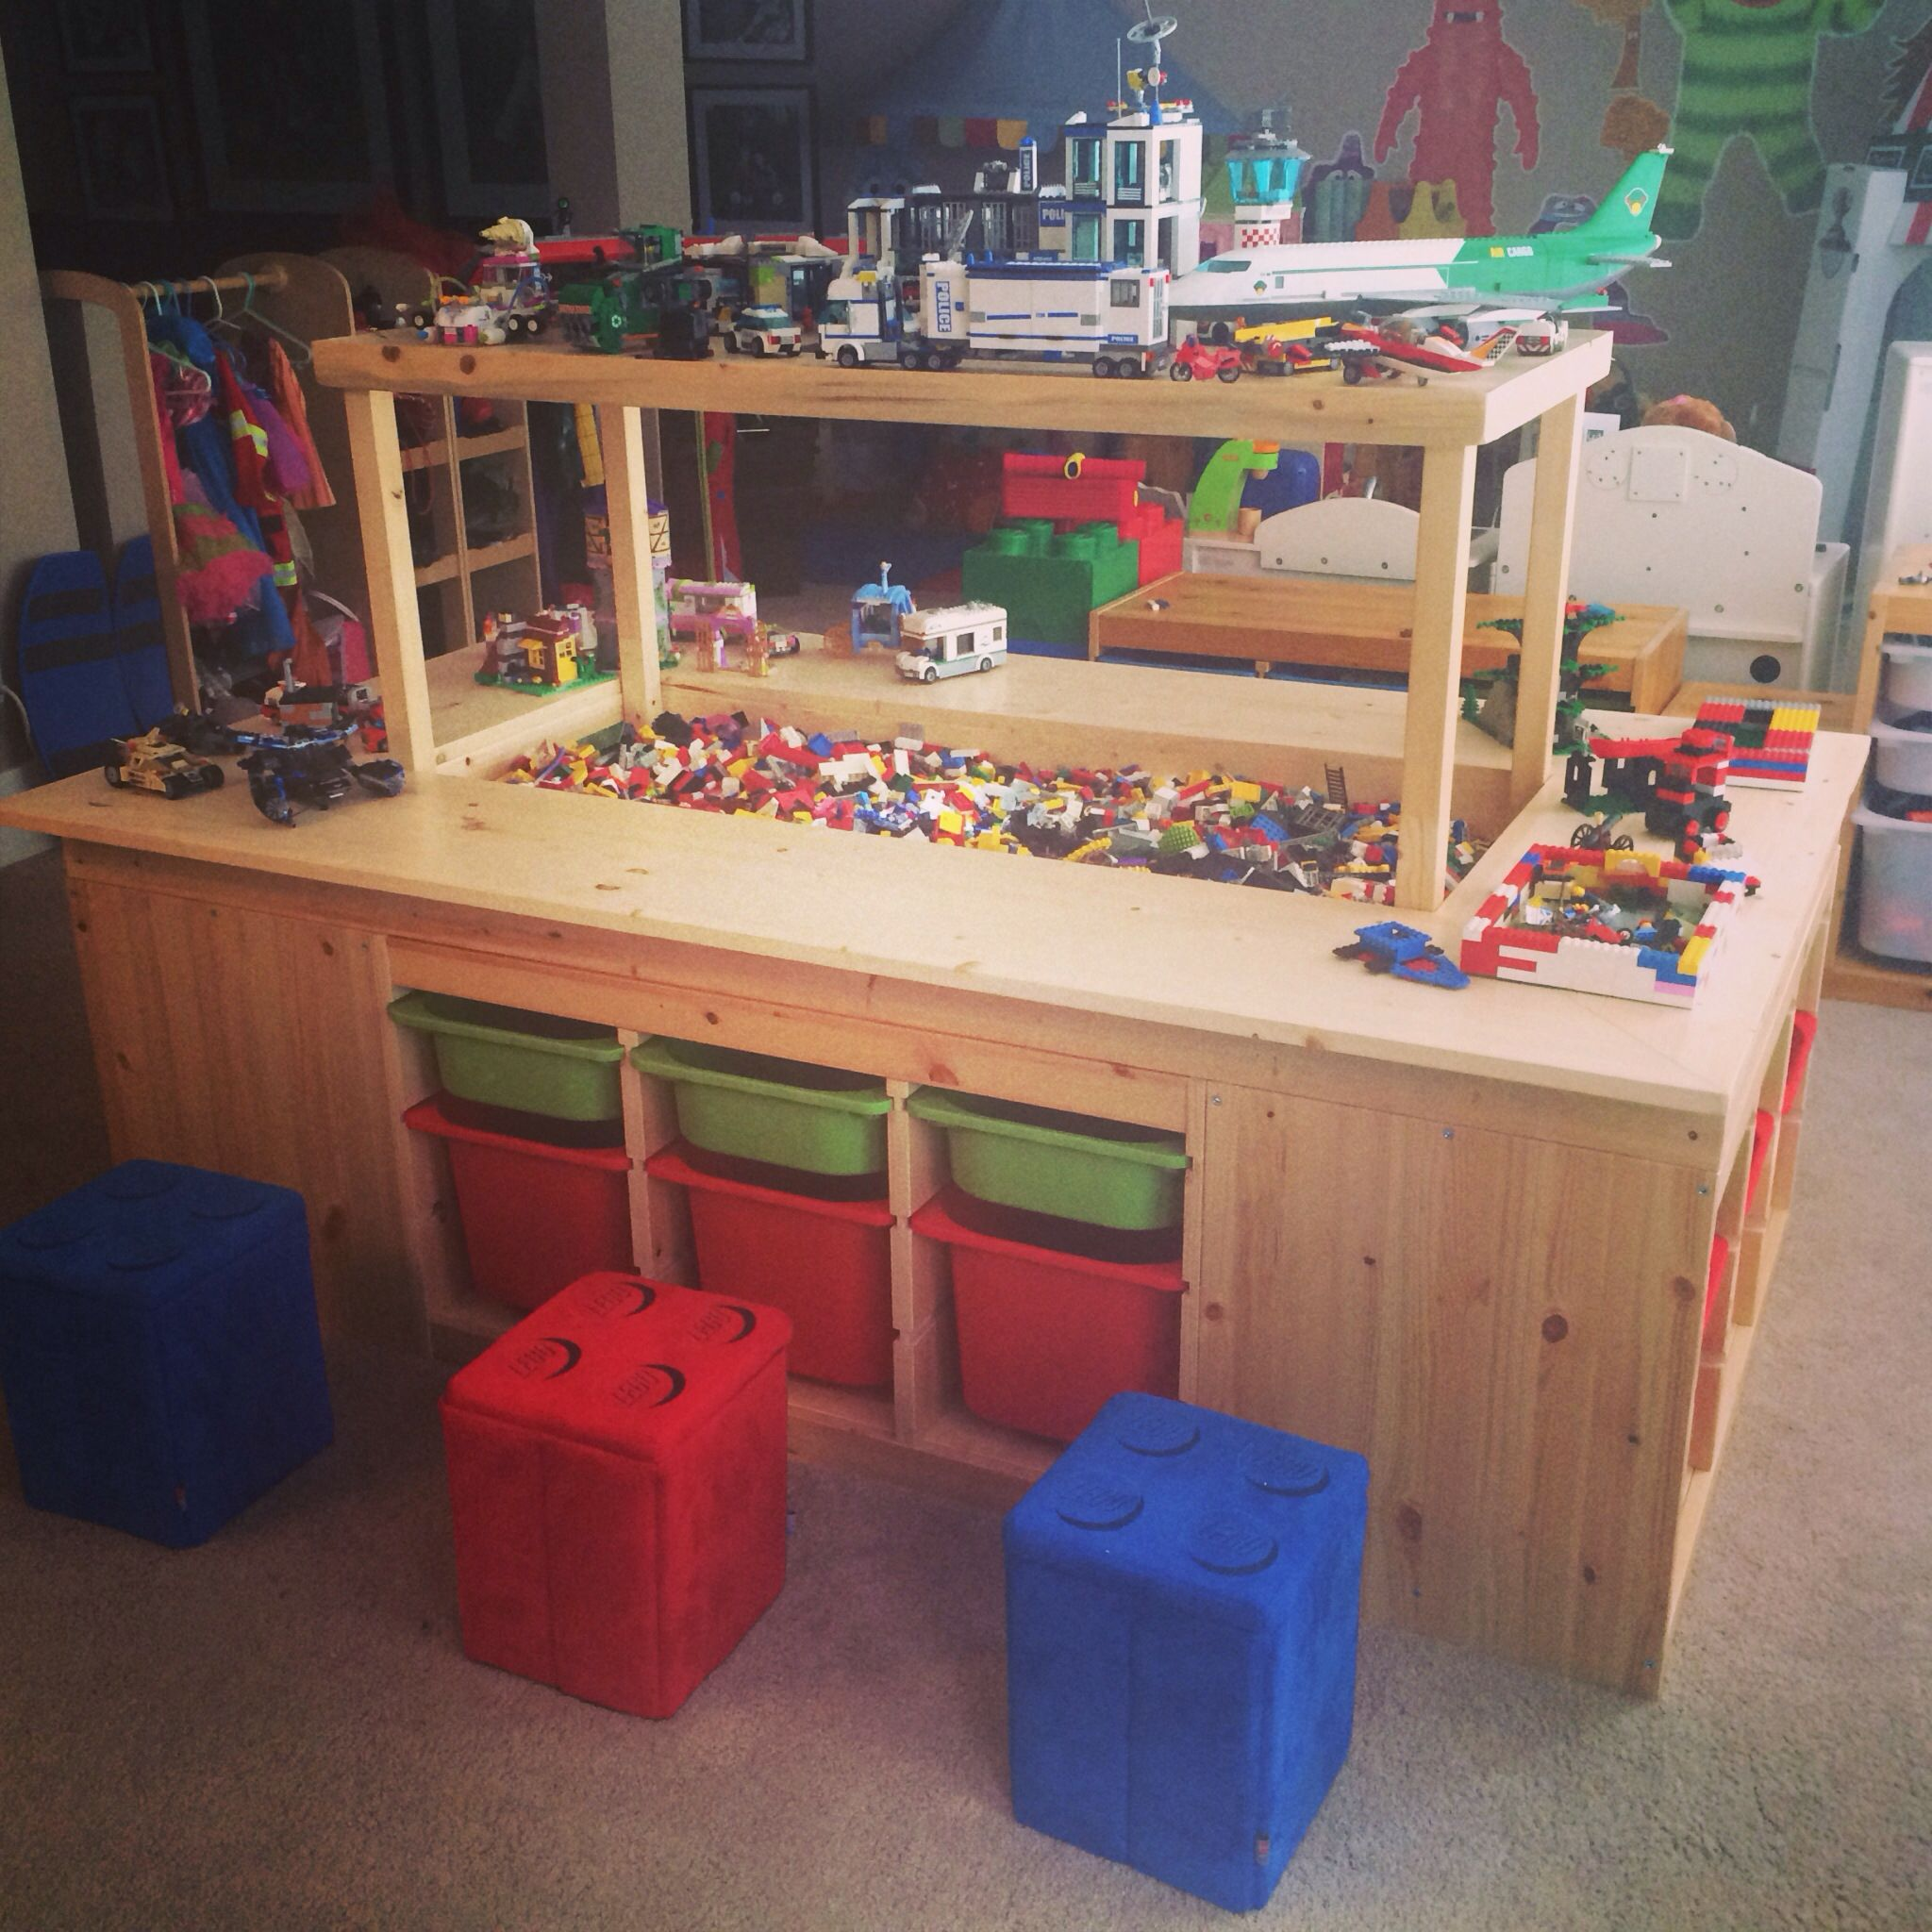 Steve built the kids the most amazing lego table legofun for Table for kids room